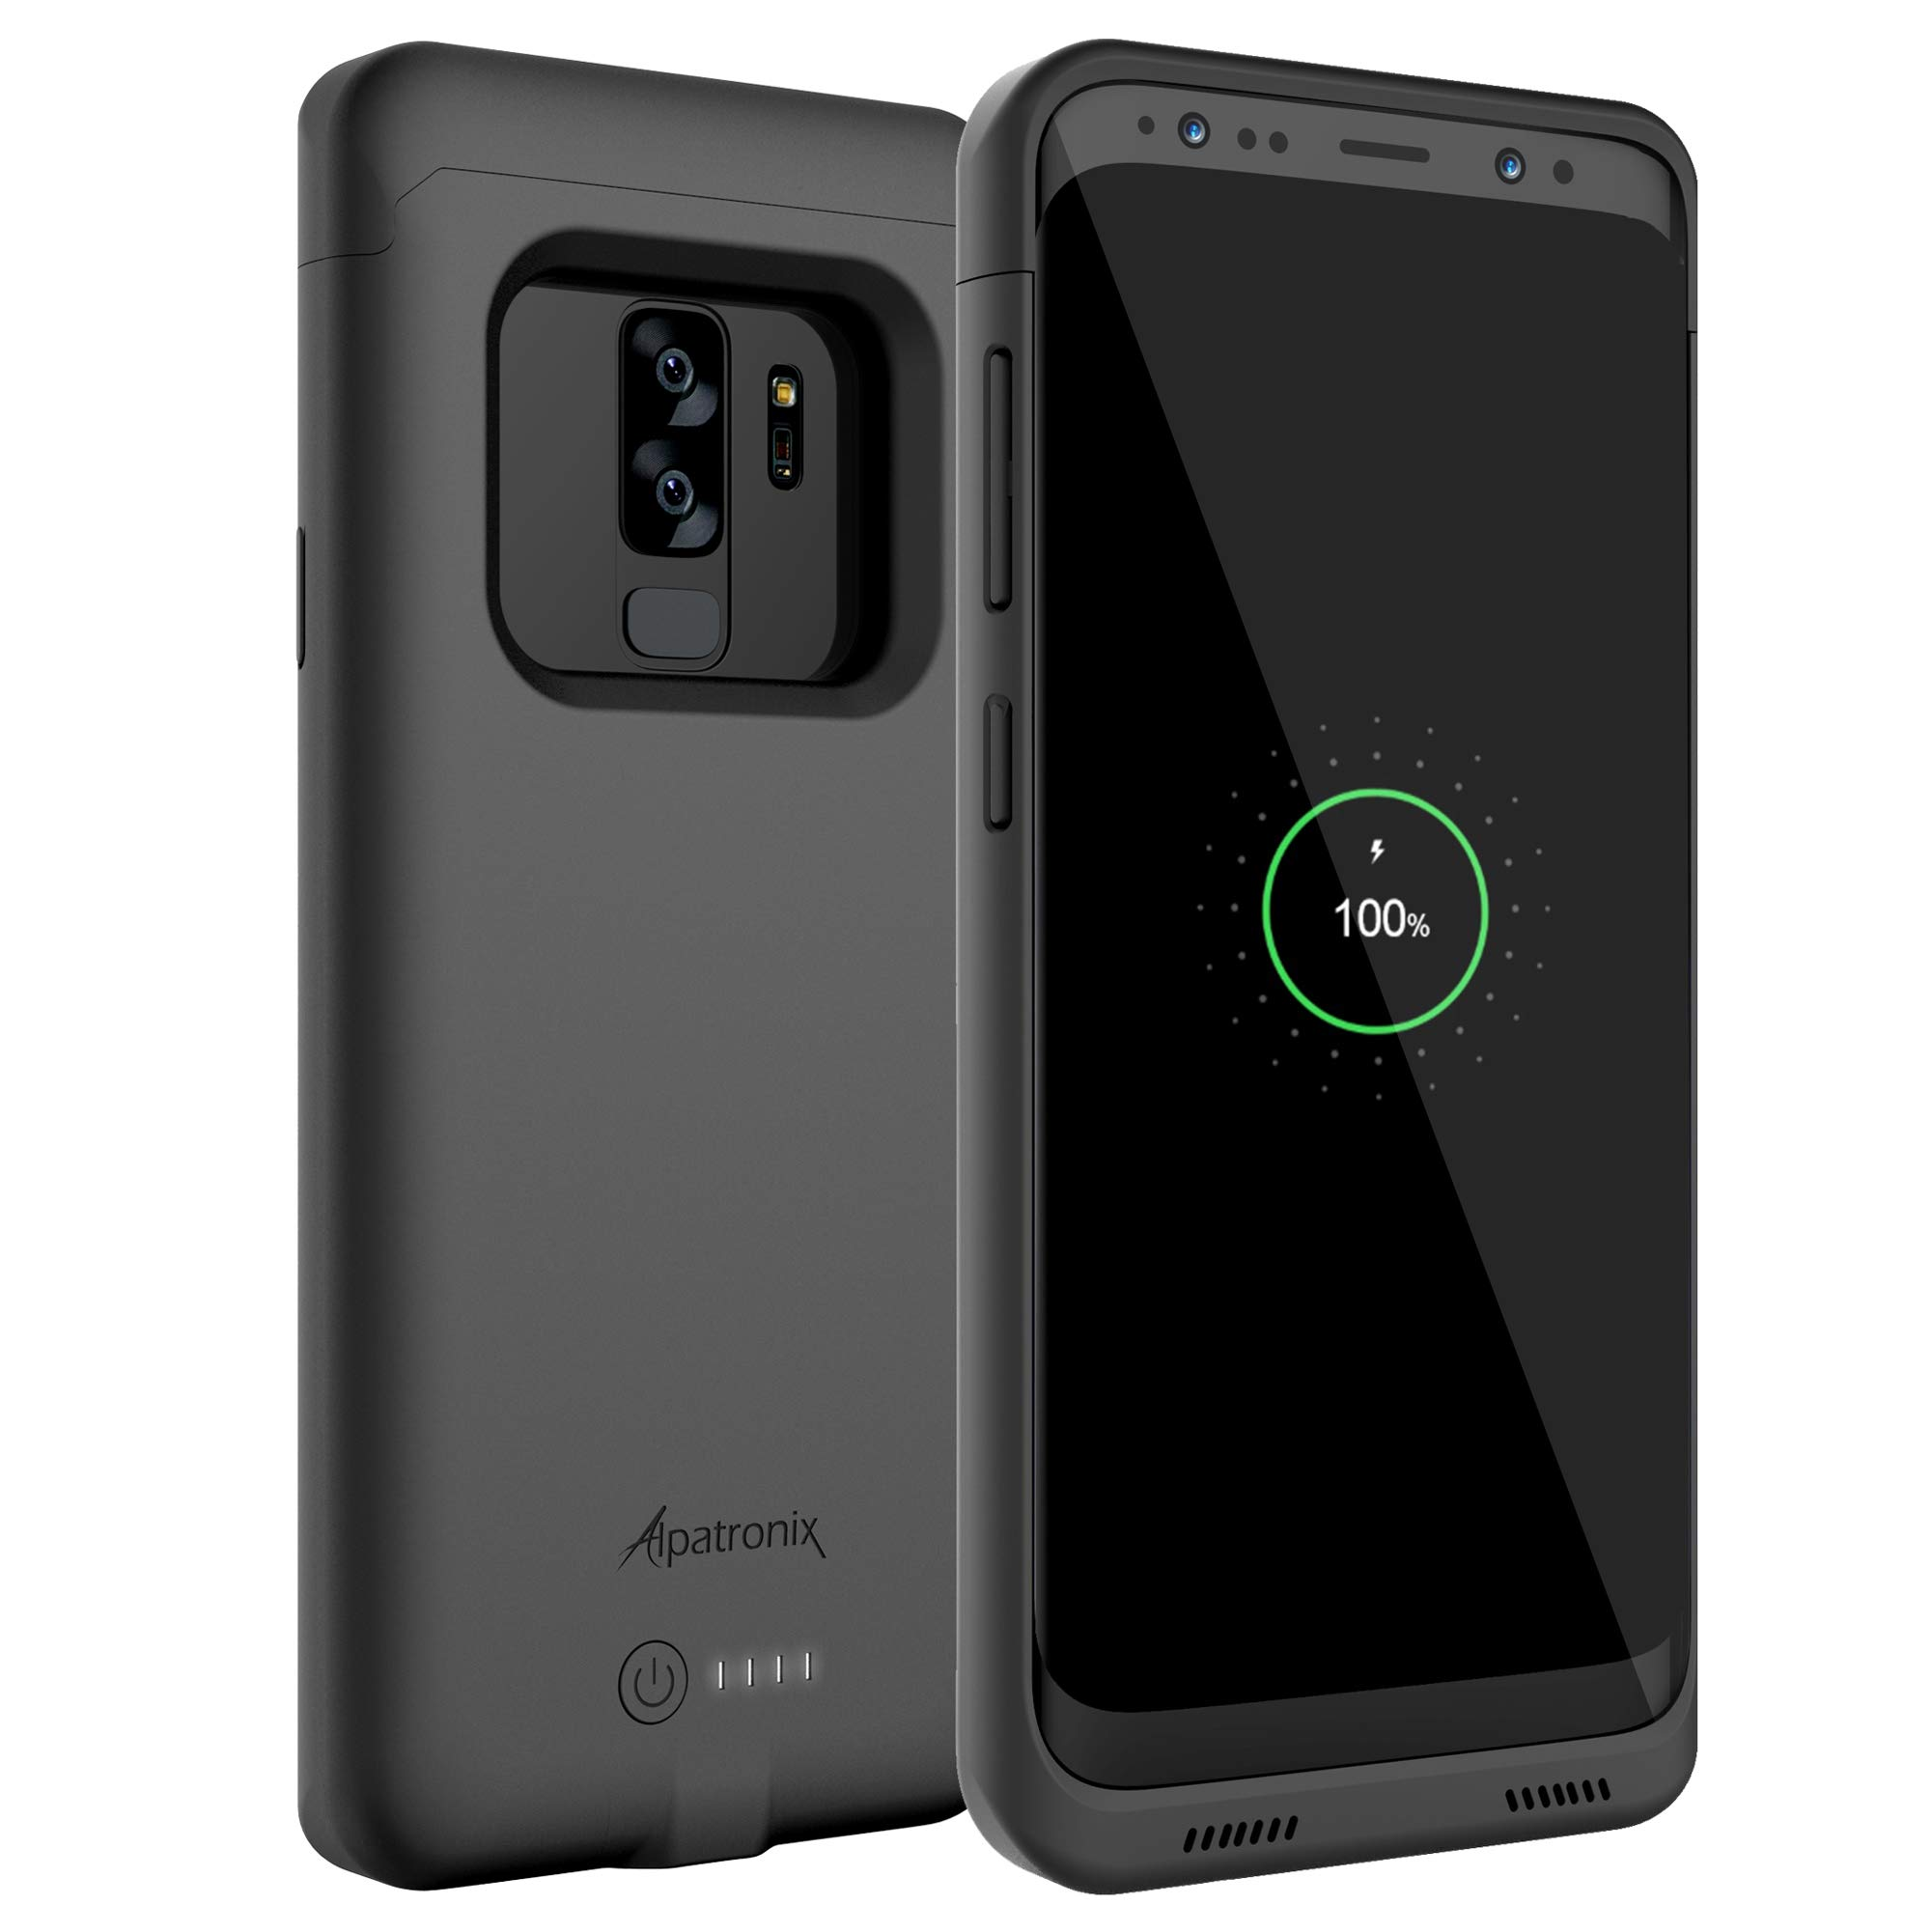 Galaxy S9 Plus Battery Case with Qi Wireless Charging Compatibility, Alpatronix BX440plus 6.2-inch 4600mAh Slim Rechargeable Protective Portable Backup Charger for Samsung S9+ [Android 8.0] - Black by Alpatronix